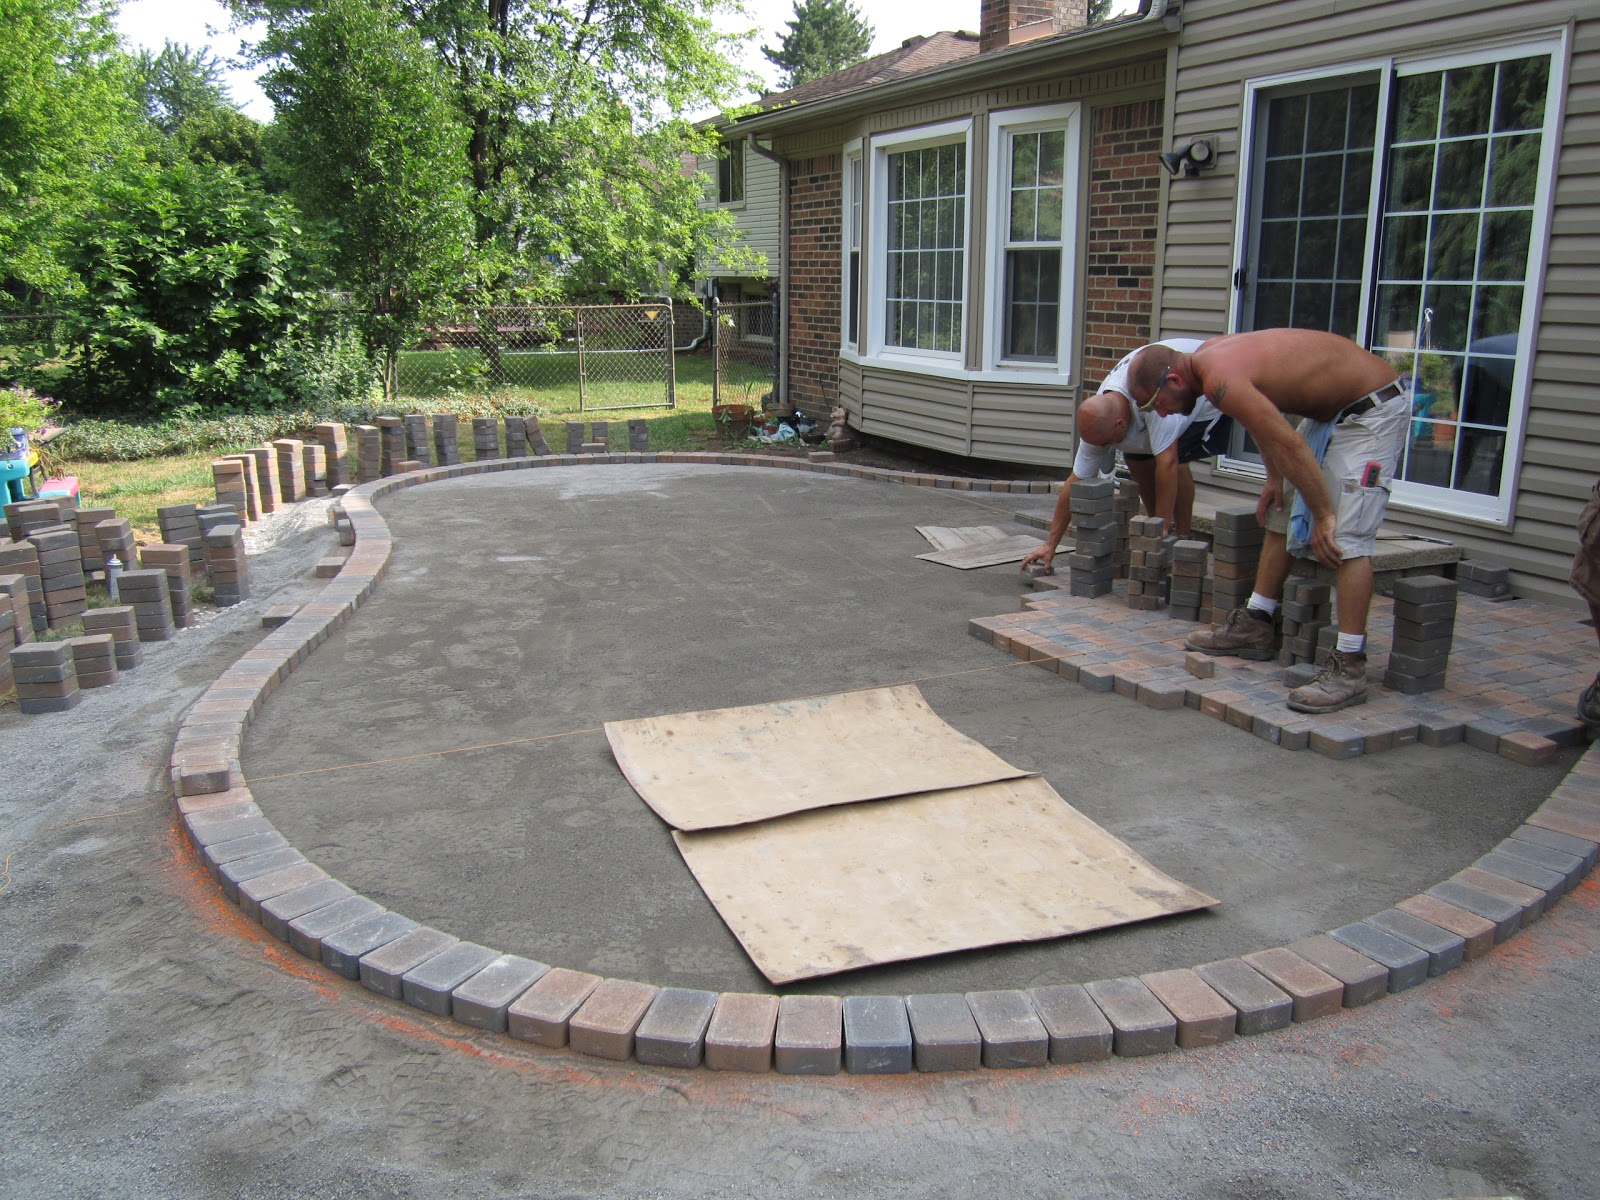 Brick paver patio ideas patio design ideas for Paver patio ideas pictures